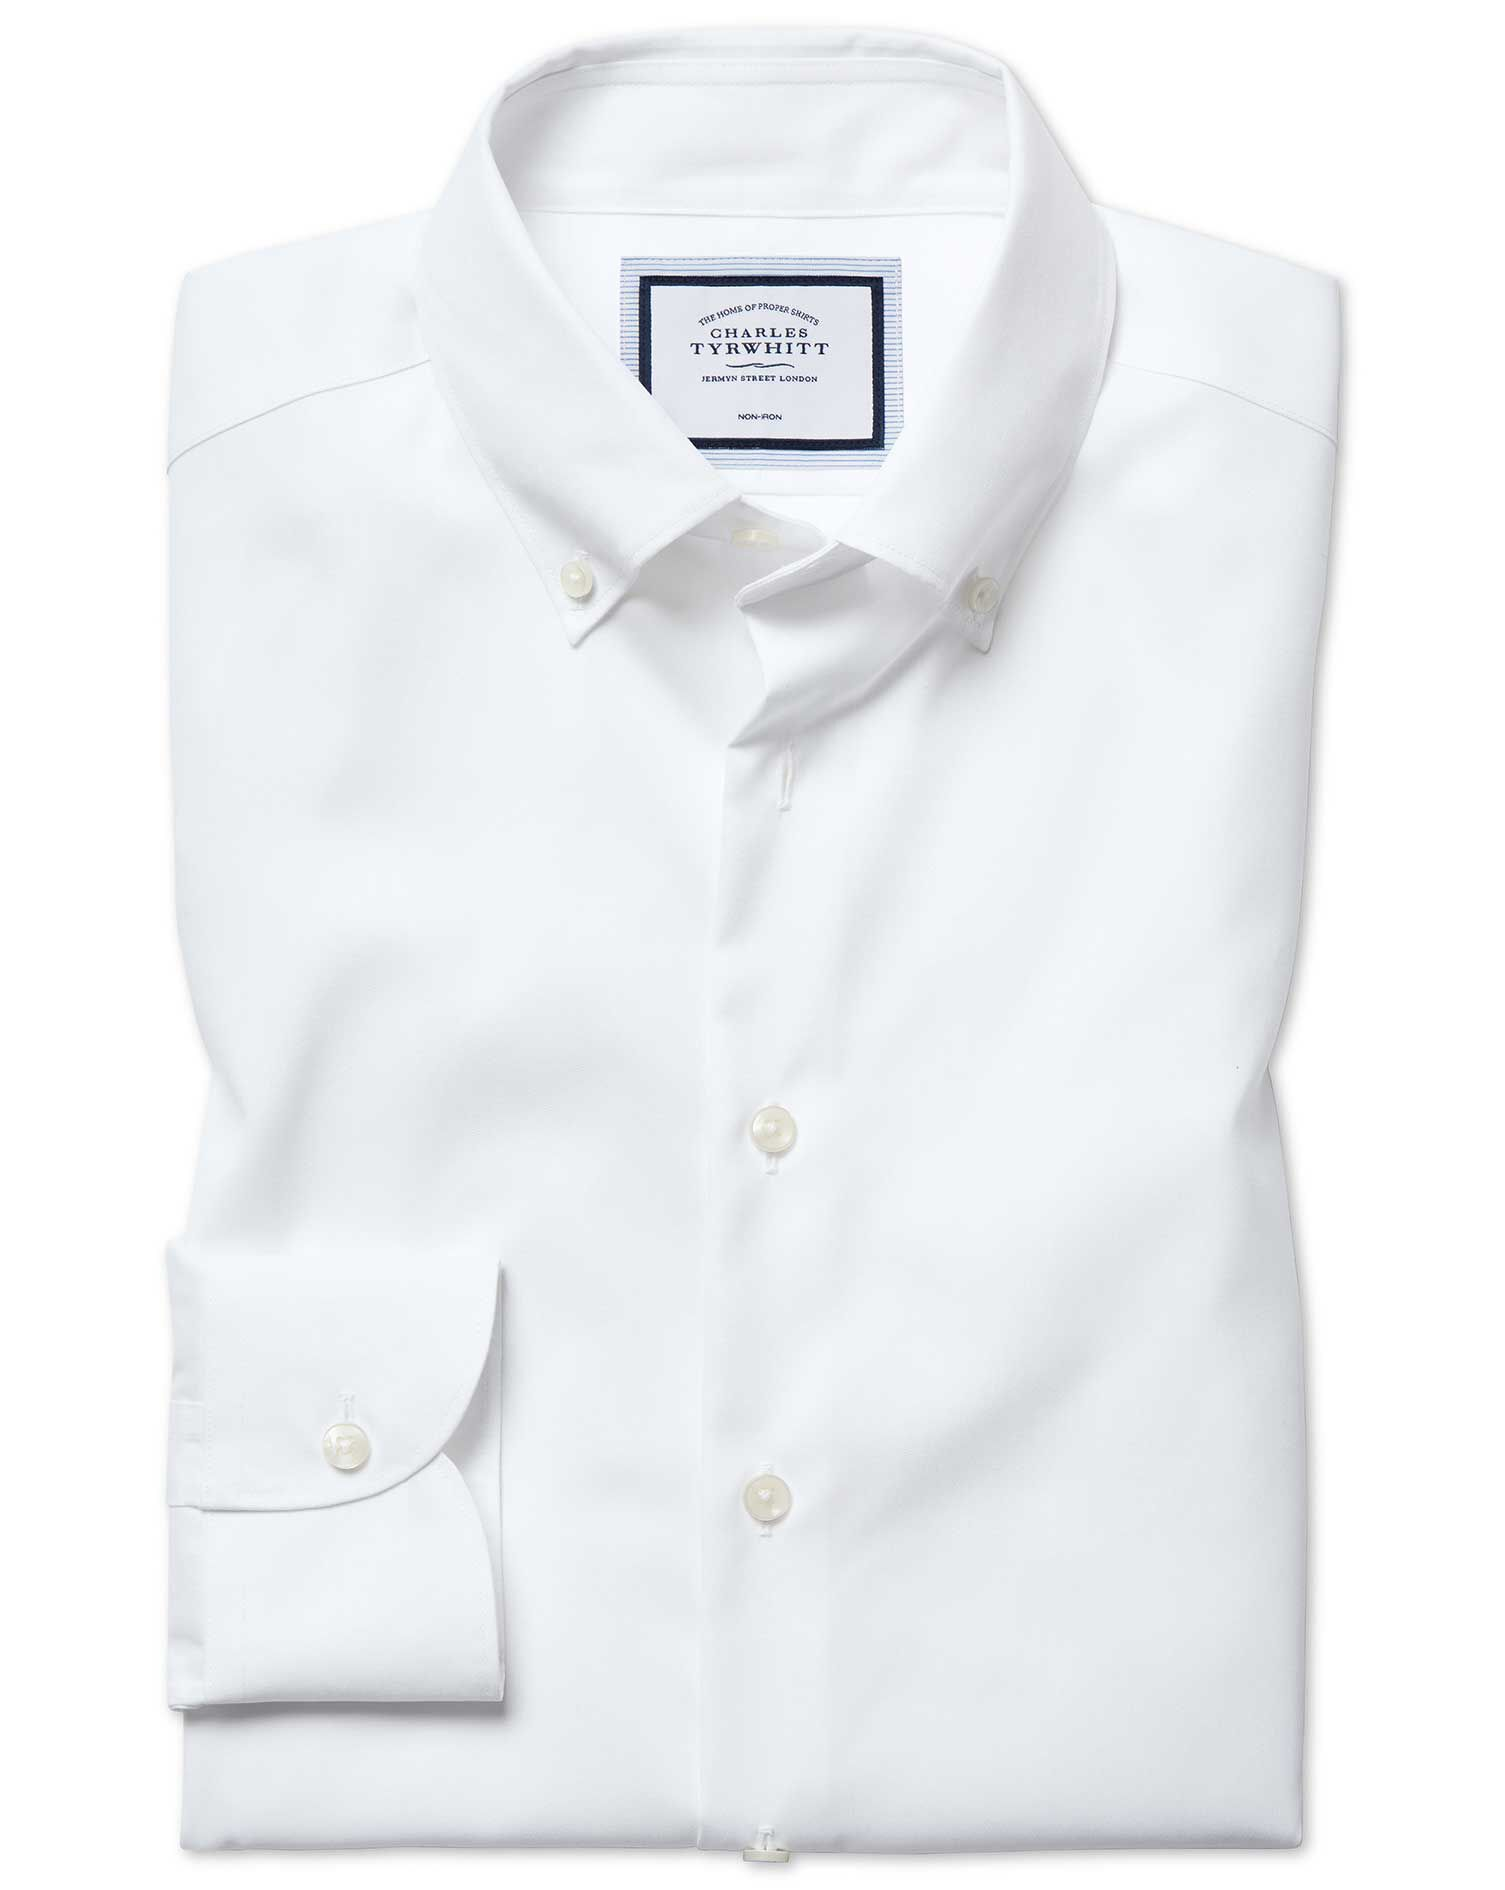 Extra Slim Fit Button-Down Business Casual Non-Iron White Cotton Formal Shirt Single Cuff Size 17/36